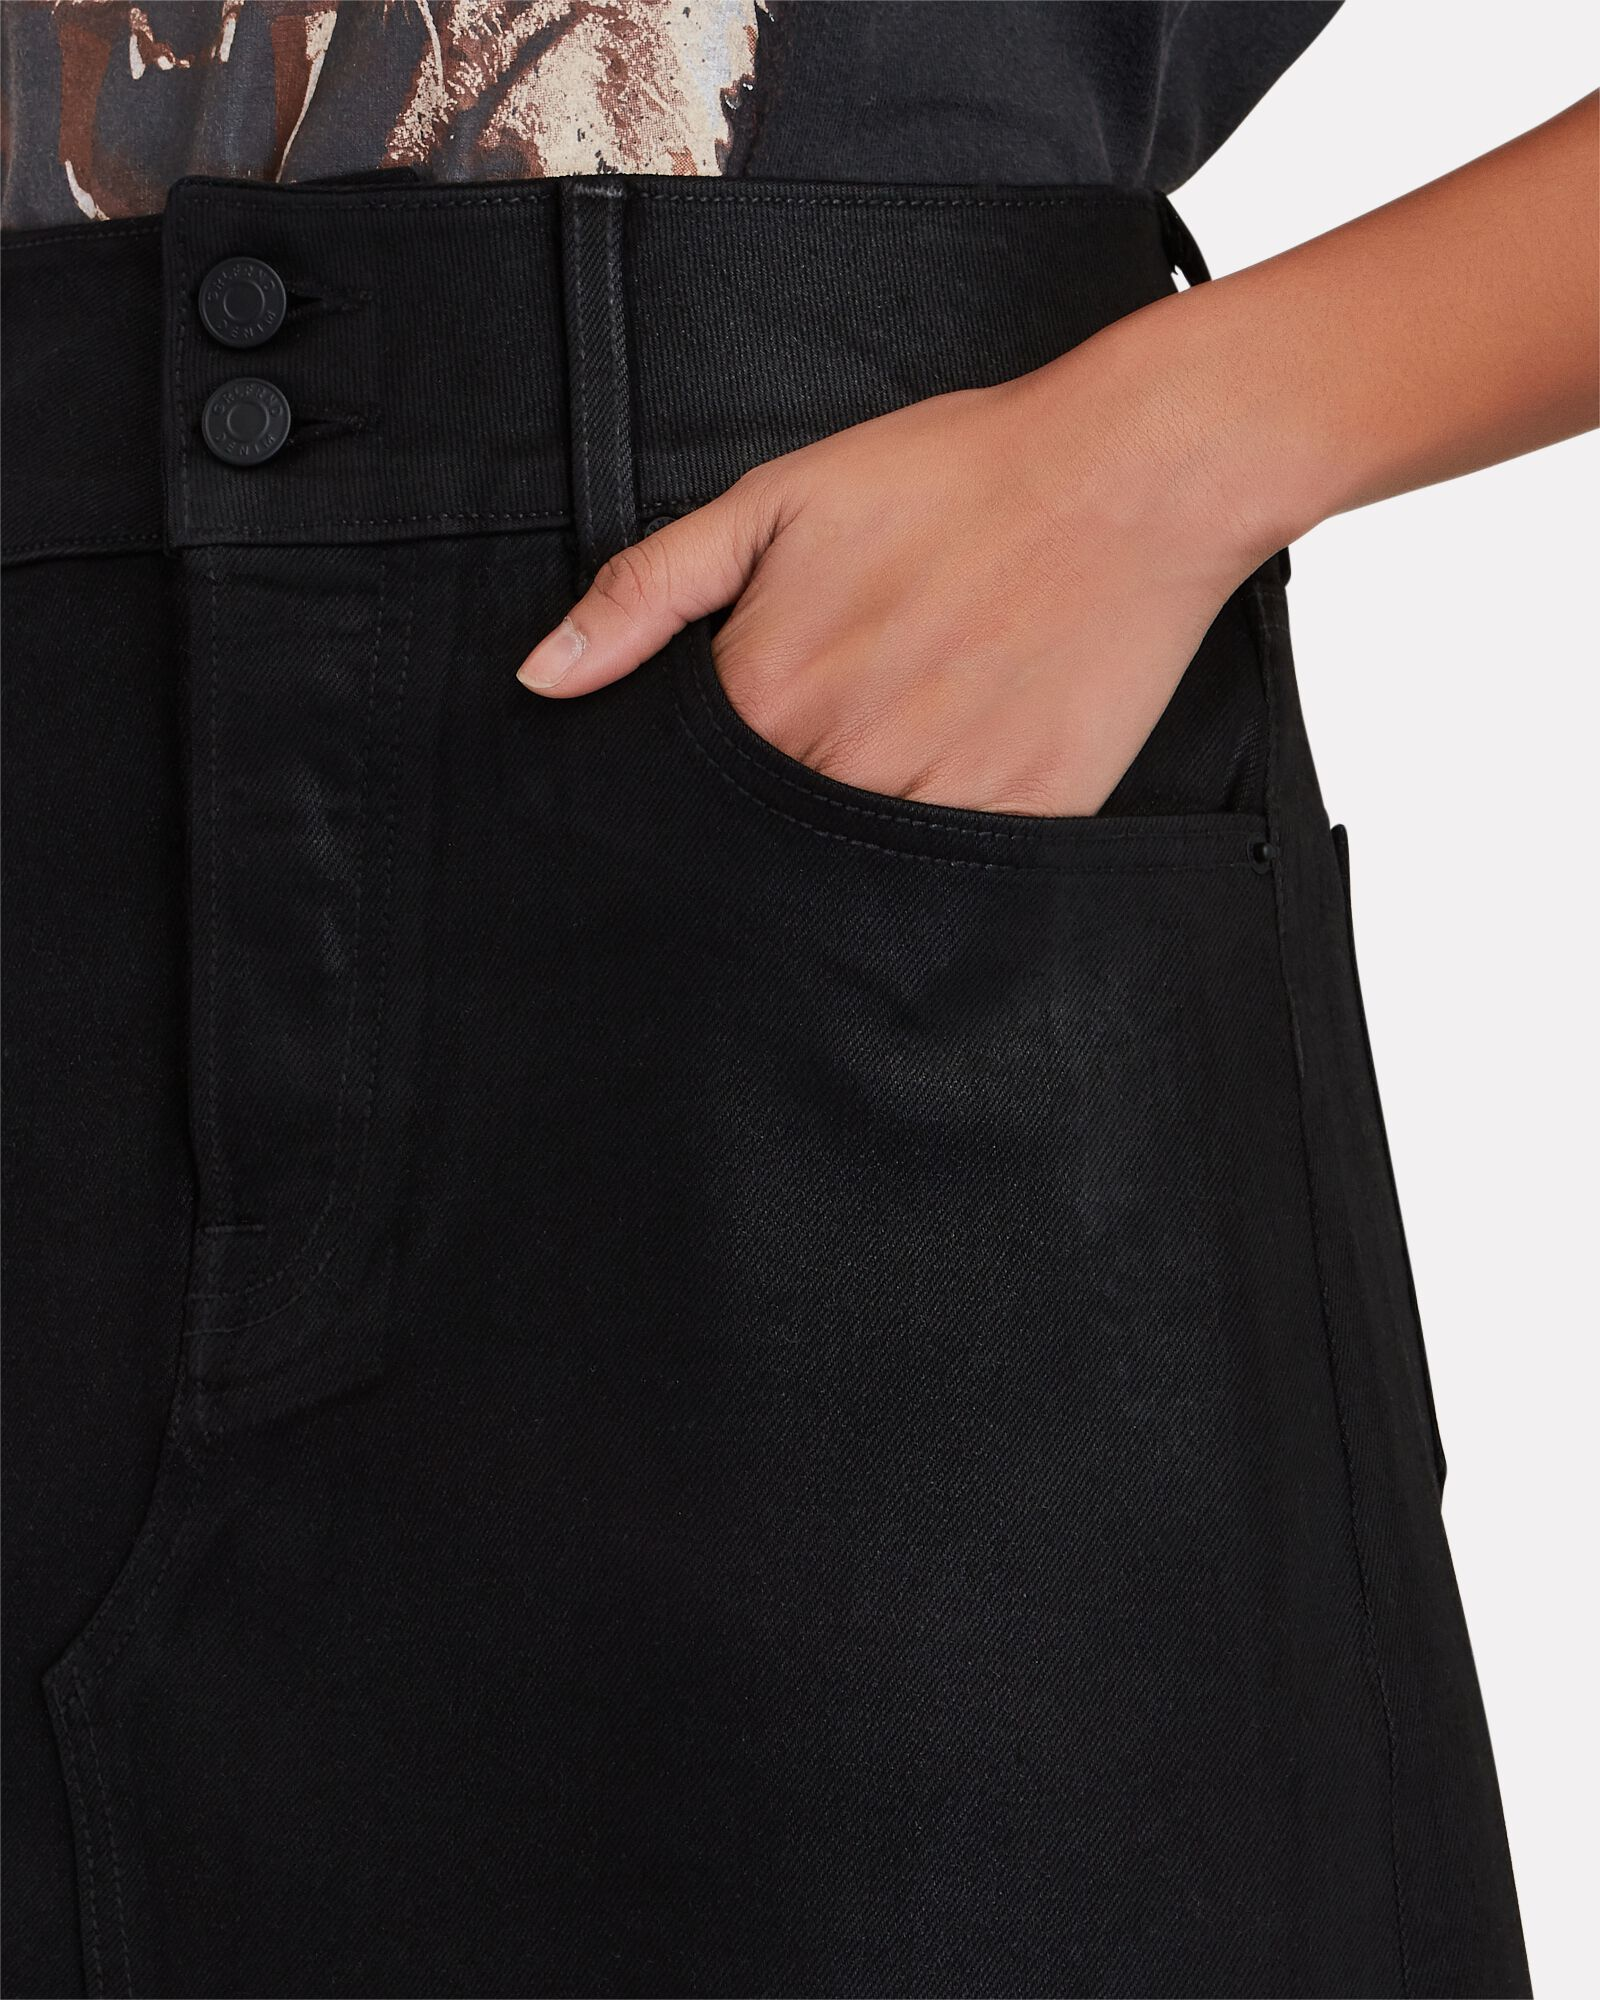 Evie Denim Mini Skirt, BLACK, hi-res